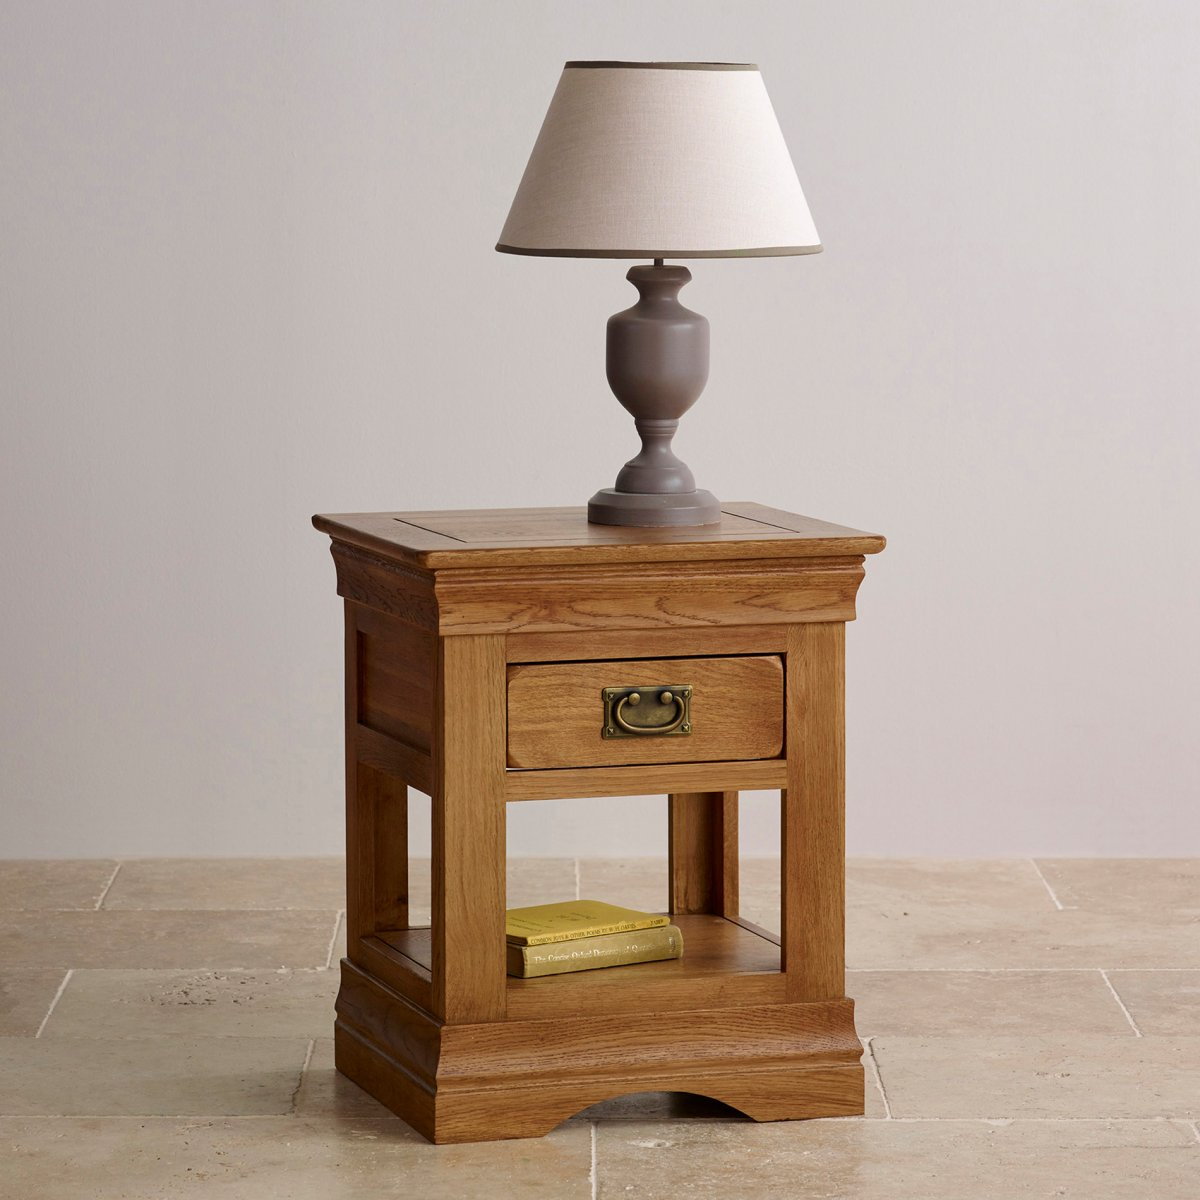 French Farmhouse Bedside Table in Rustic Solid Oak